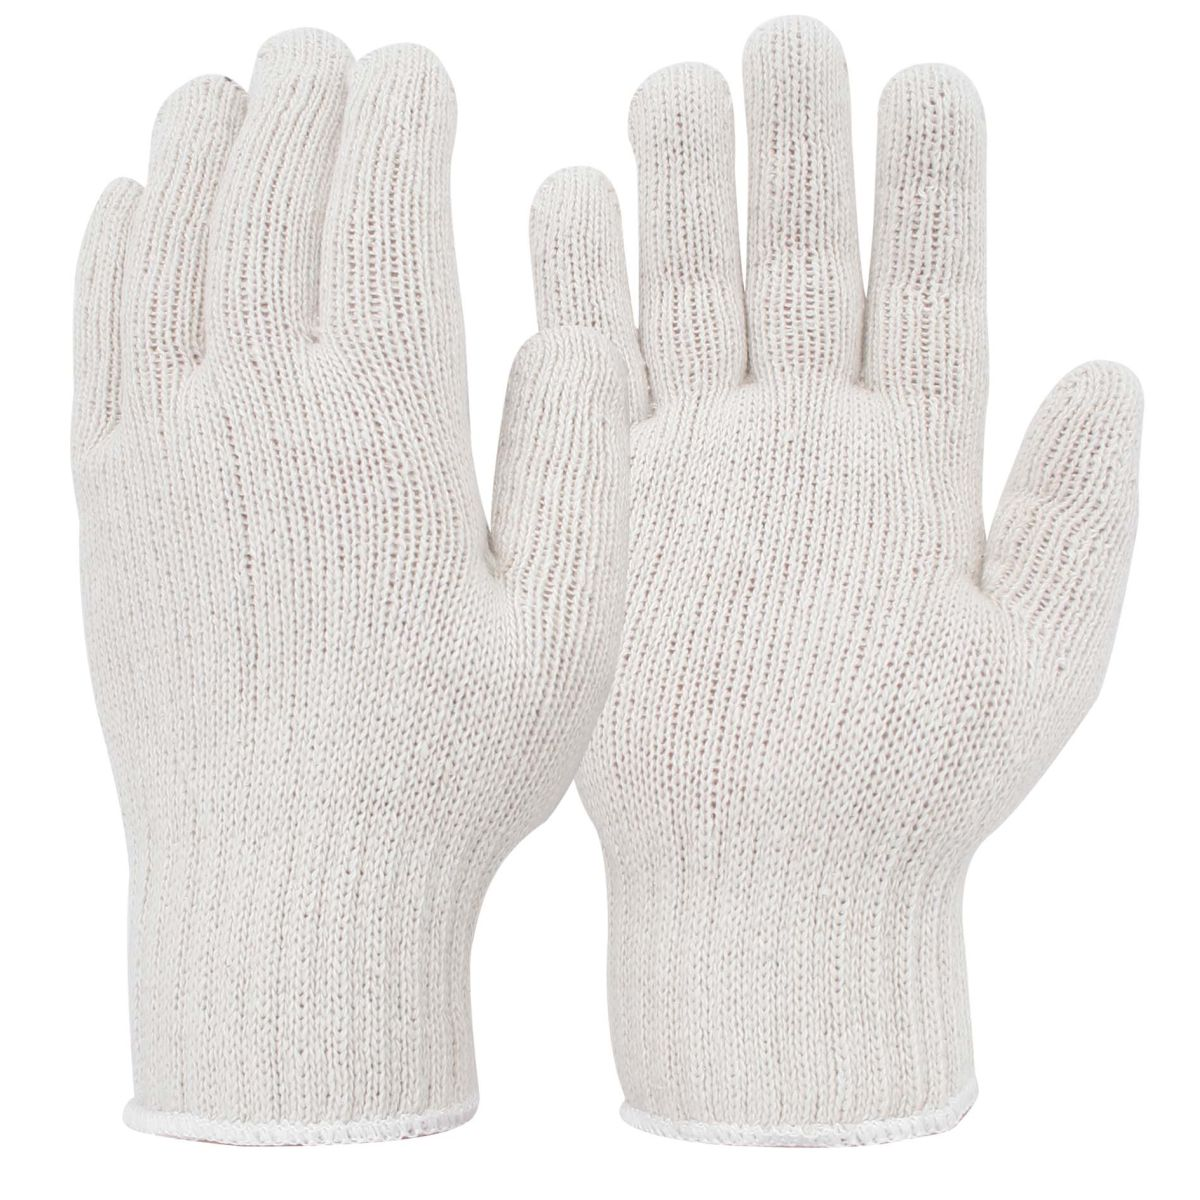 White Knitted Hand Protection